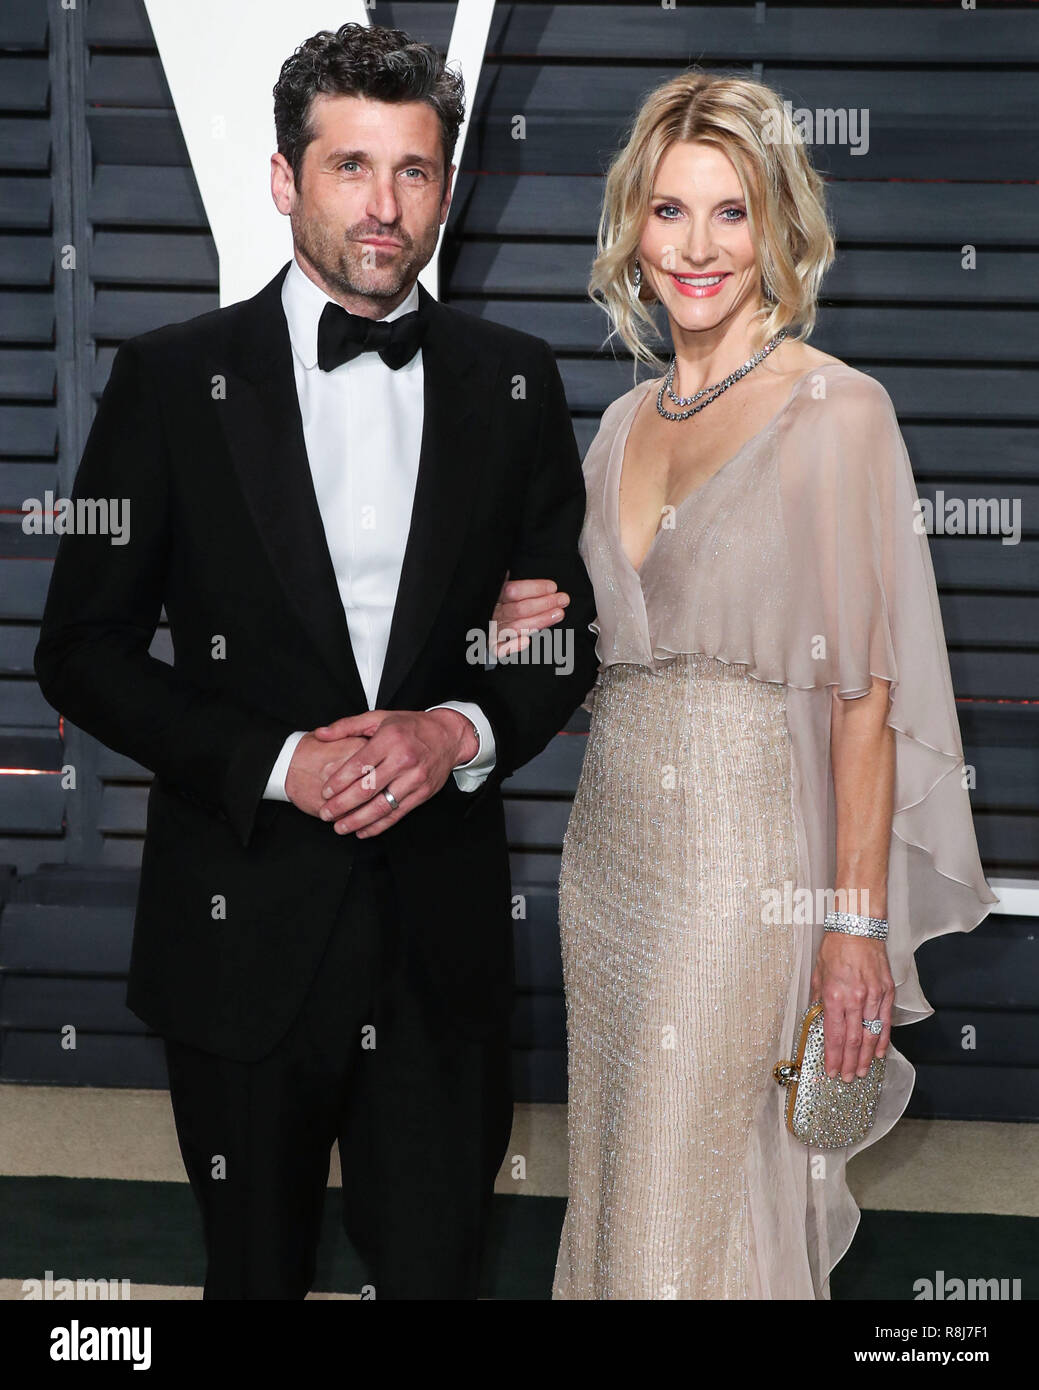 Patrick Dempsey And Jillian Fink Stock Photos Patrick Dempsey And